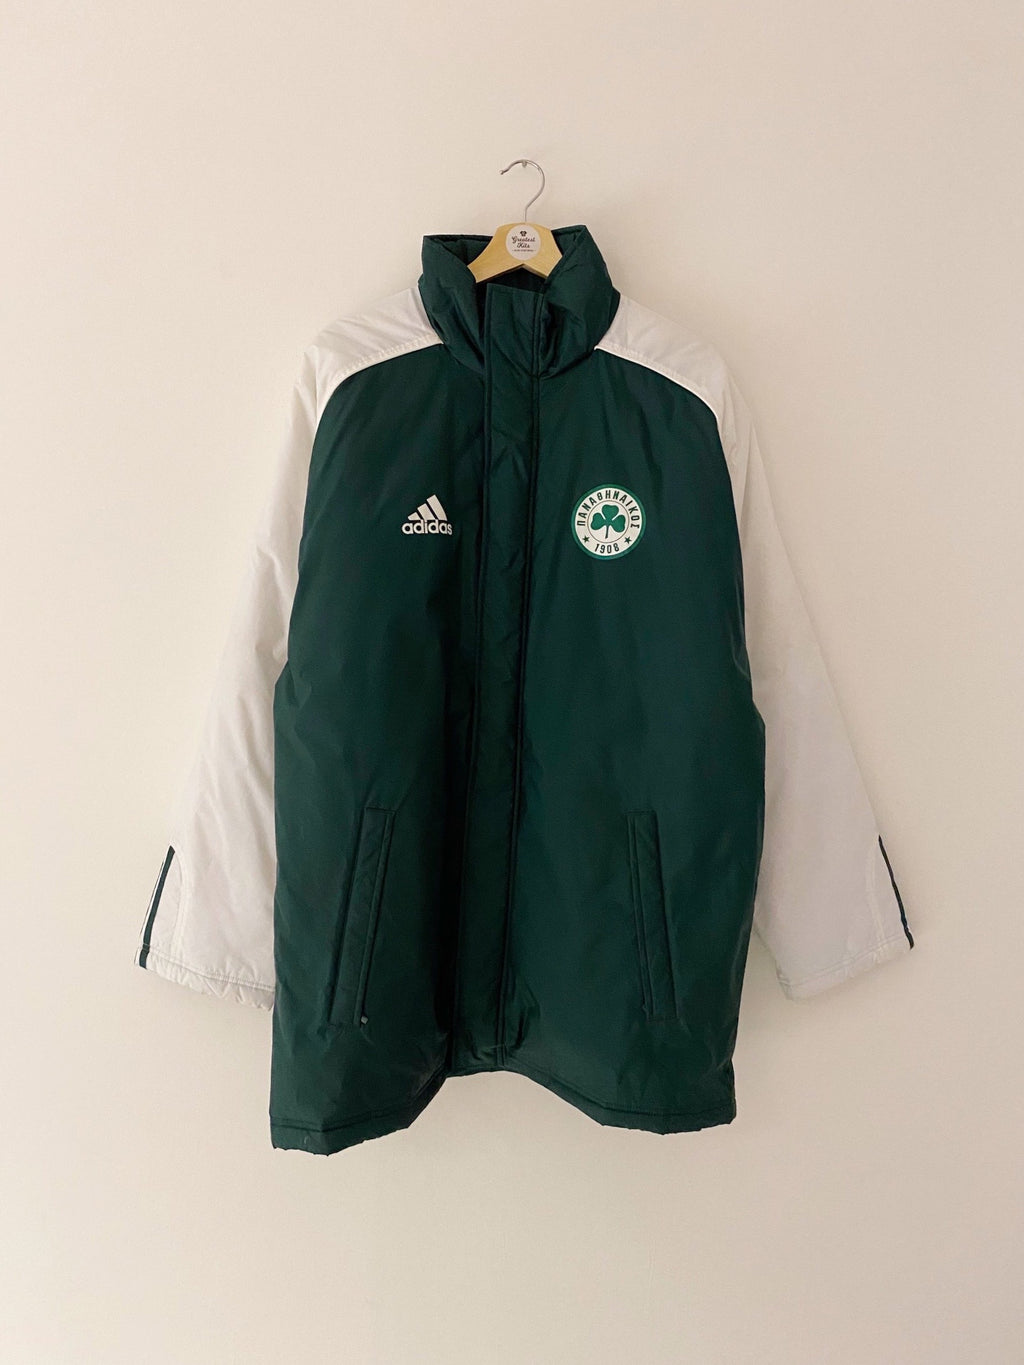 2004/05 Panathinaikos Bench Coat (M/L) 8/10